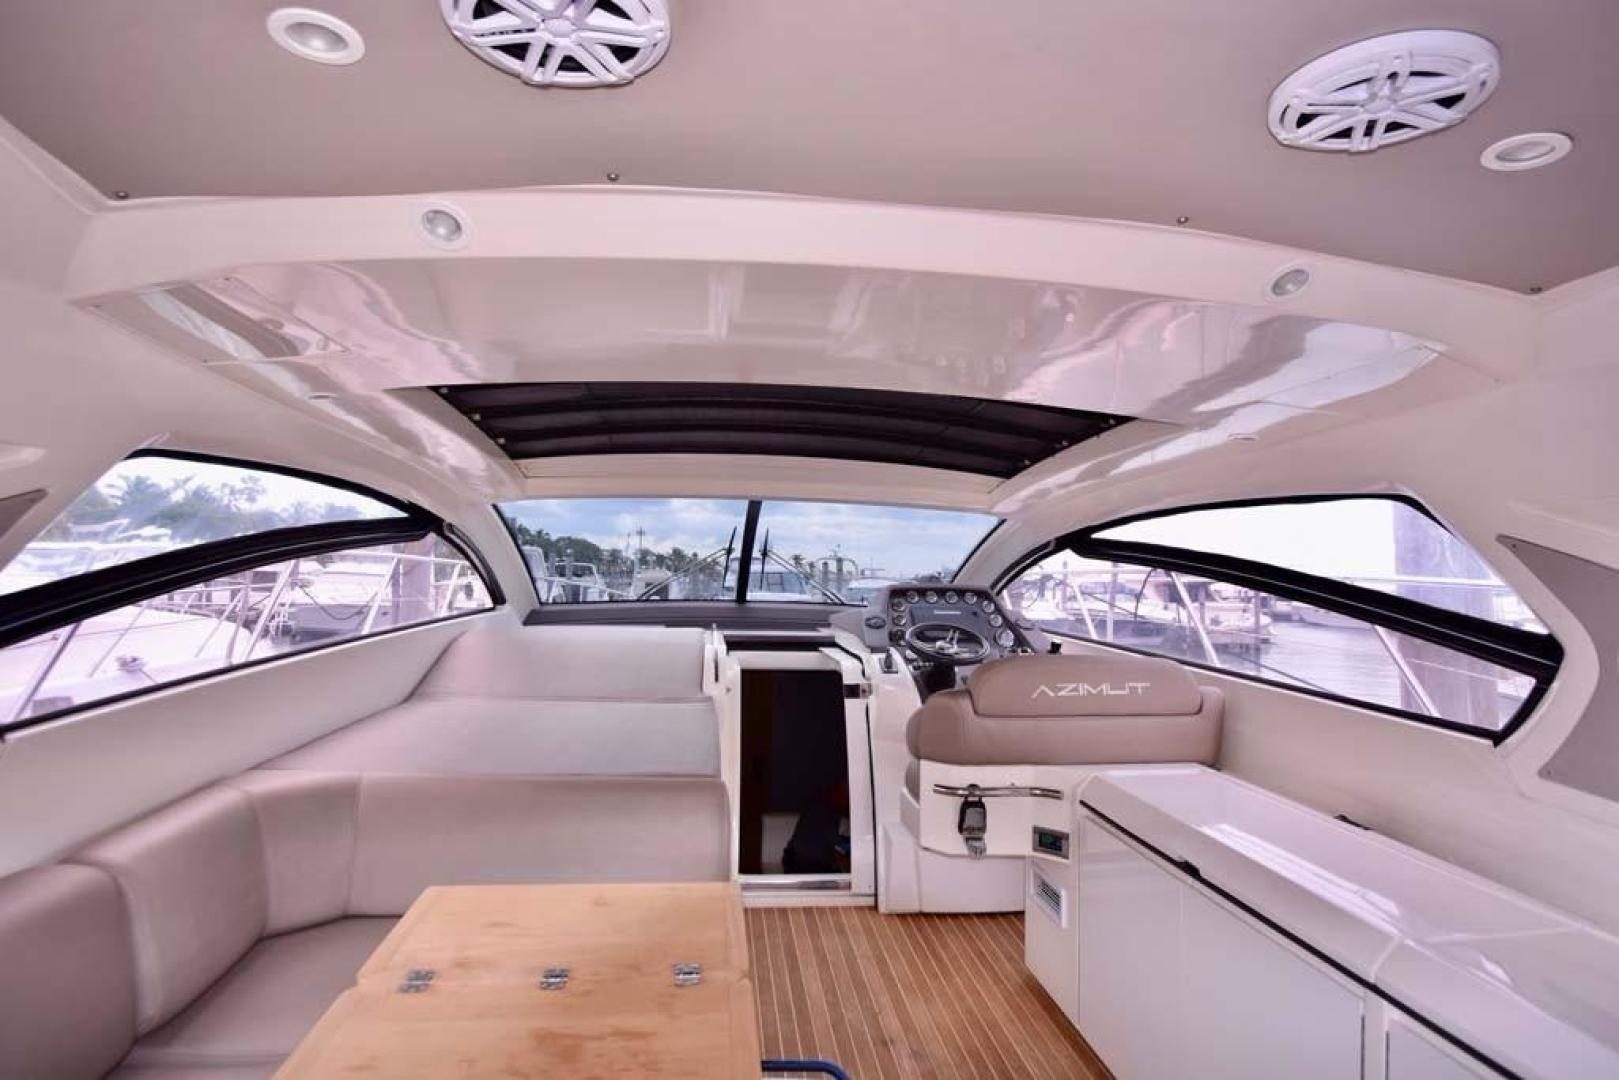 Azimut-48 ATLANTIS 2013-Spectrum Miami-Florida-United States-Helm View from Aft Seating-369659 | Thumbnail